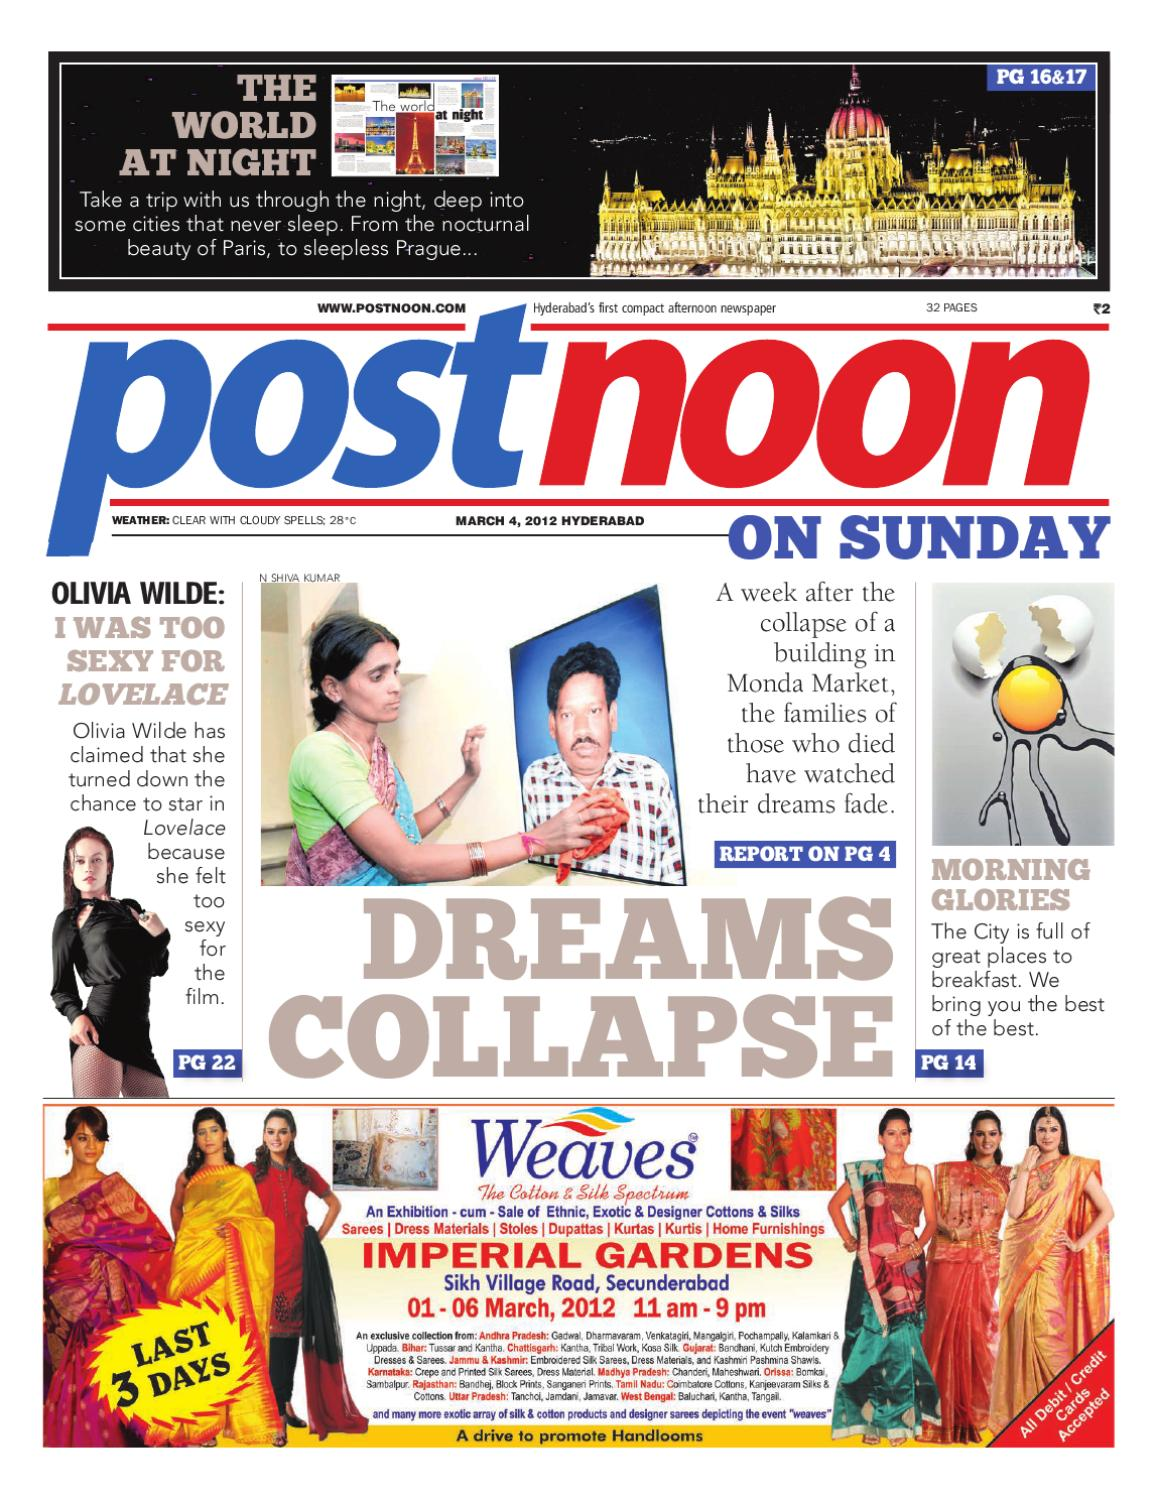 Postnoon E-Paper for 04 March 2012